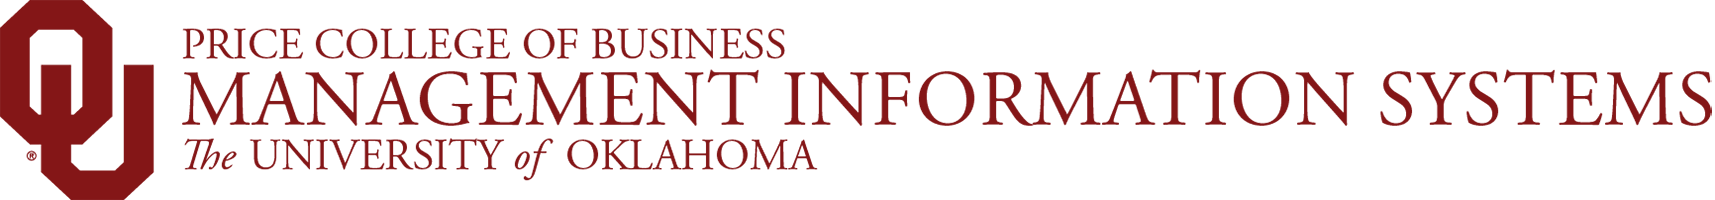 Price College of Business, Management Information Systems, The University of Oklahoma website wordmark